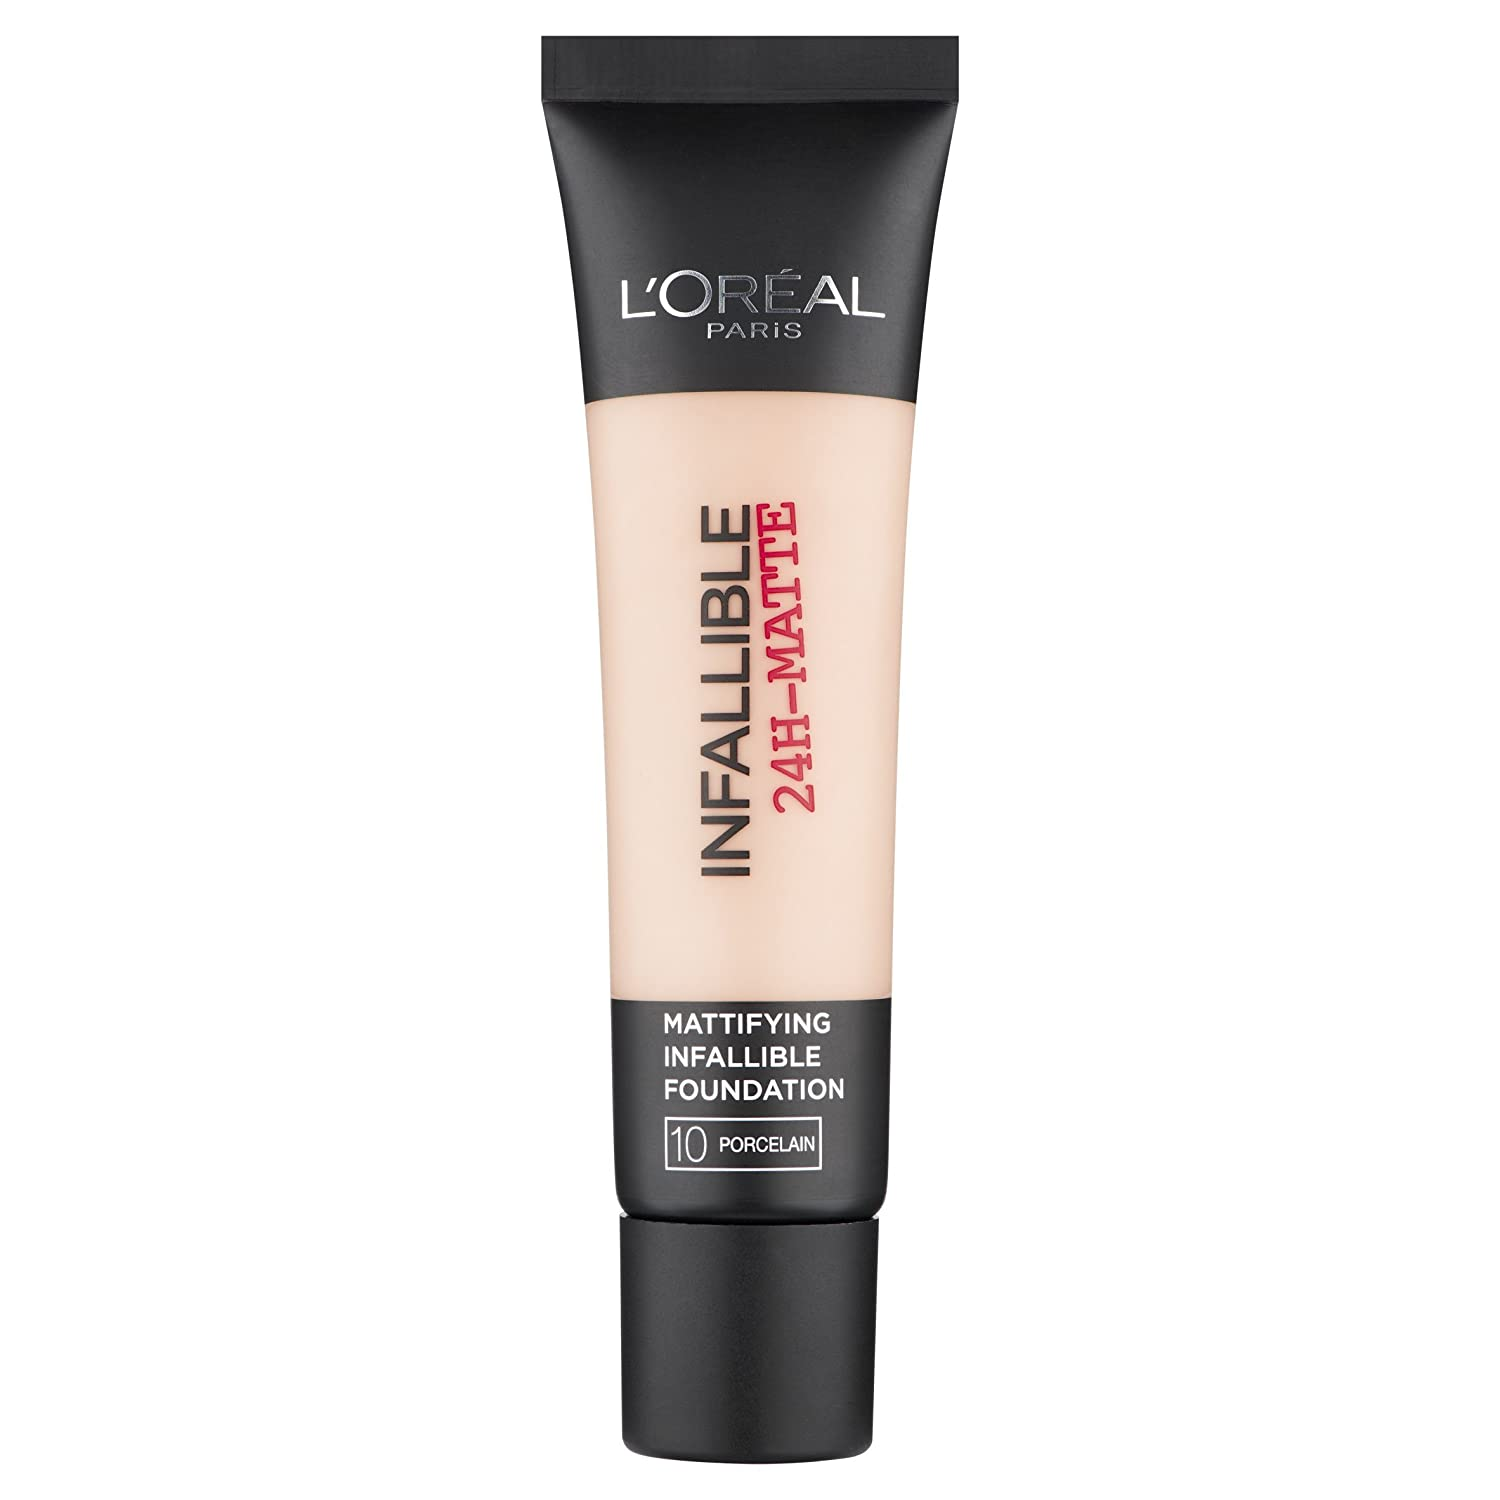 L'Oréal Infallible 24H Matte Foundation, 10 Porcelain, 30 ml L'Oréal Paris 3600522875208